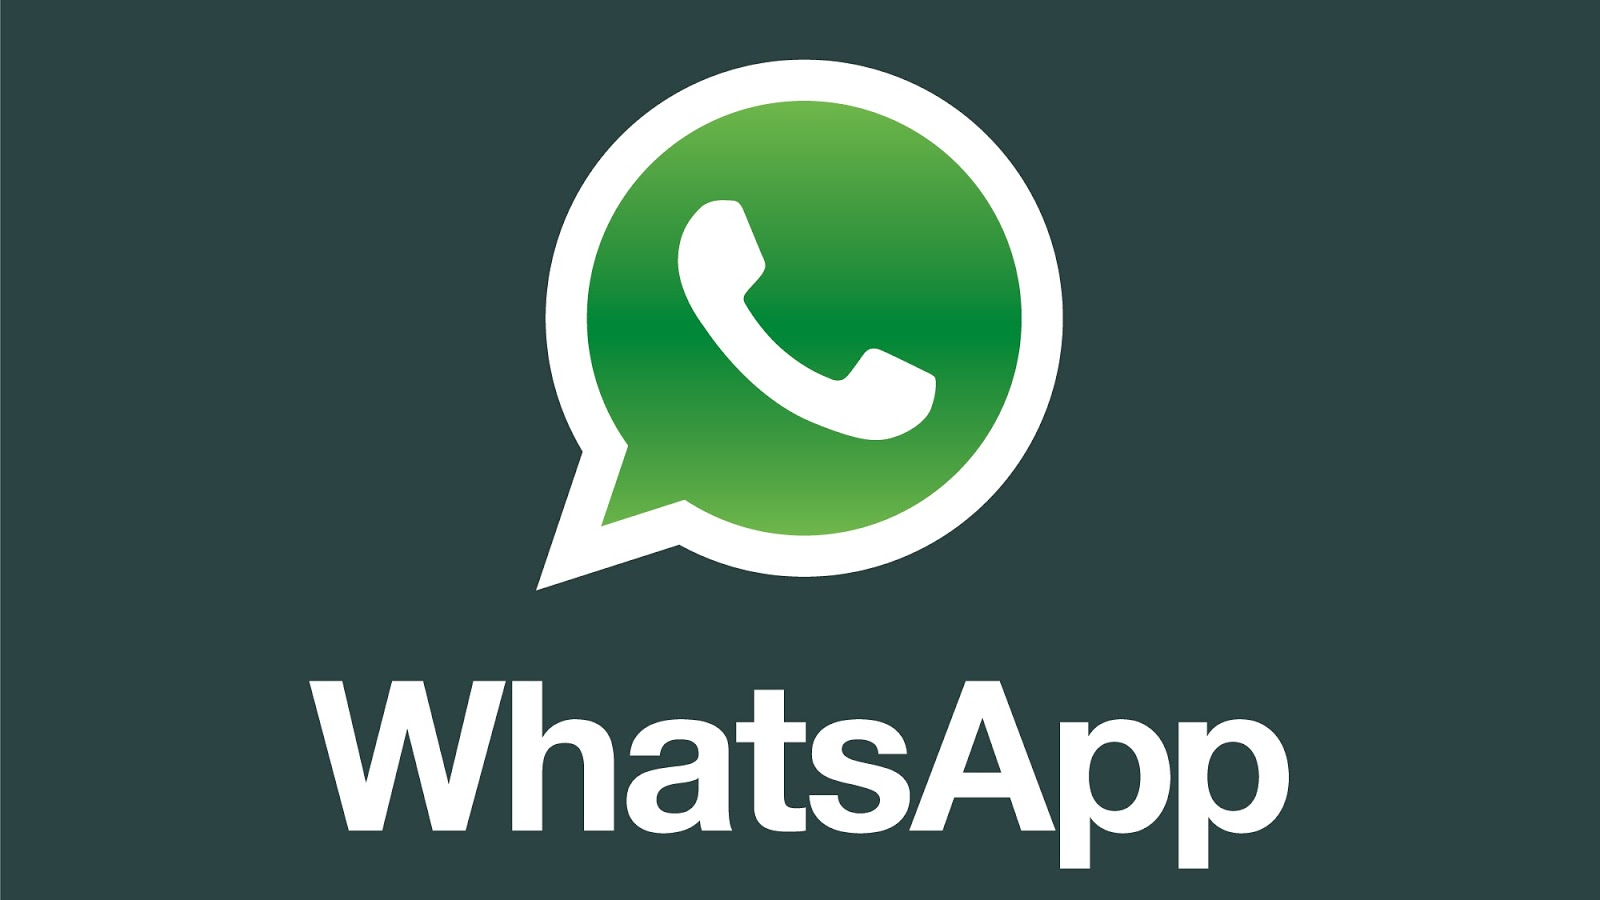 Download whatsapp for android 2.1 apk